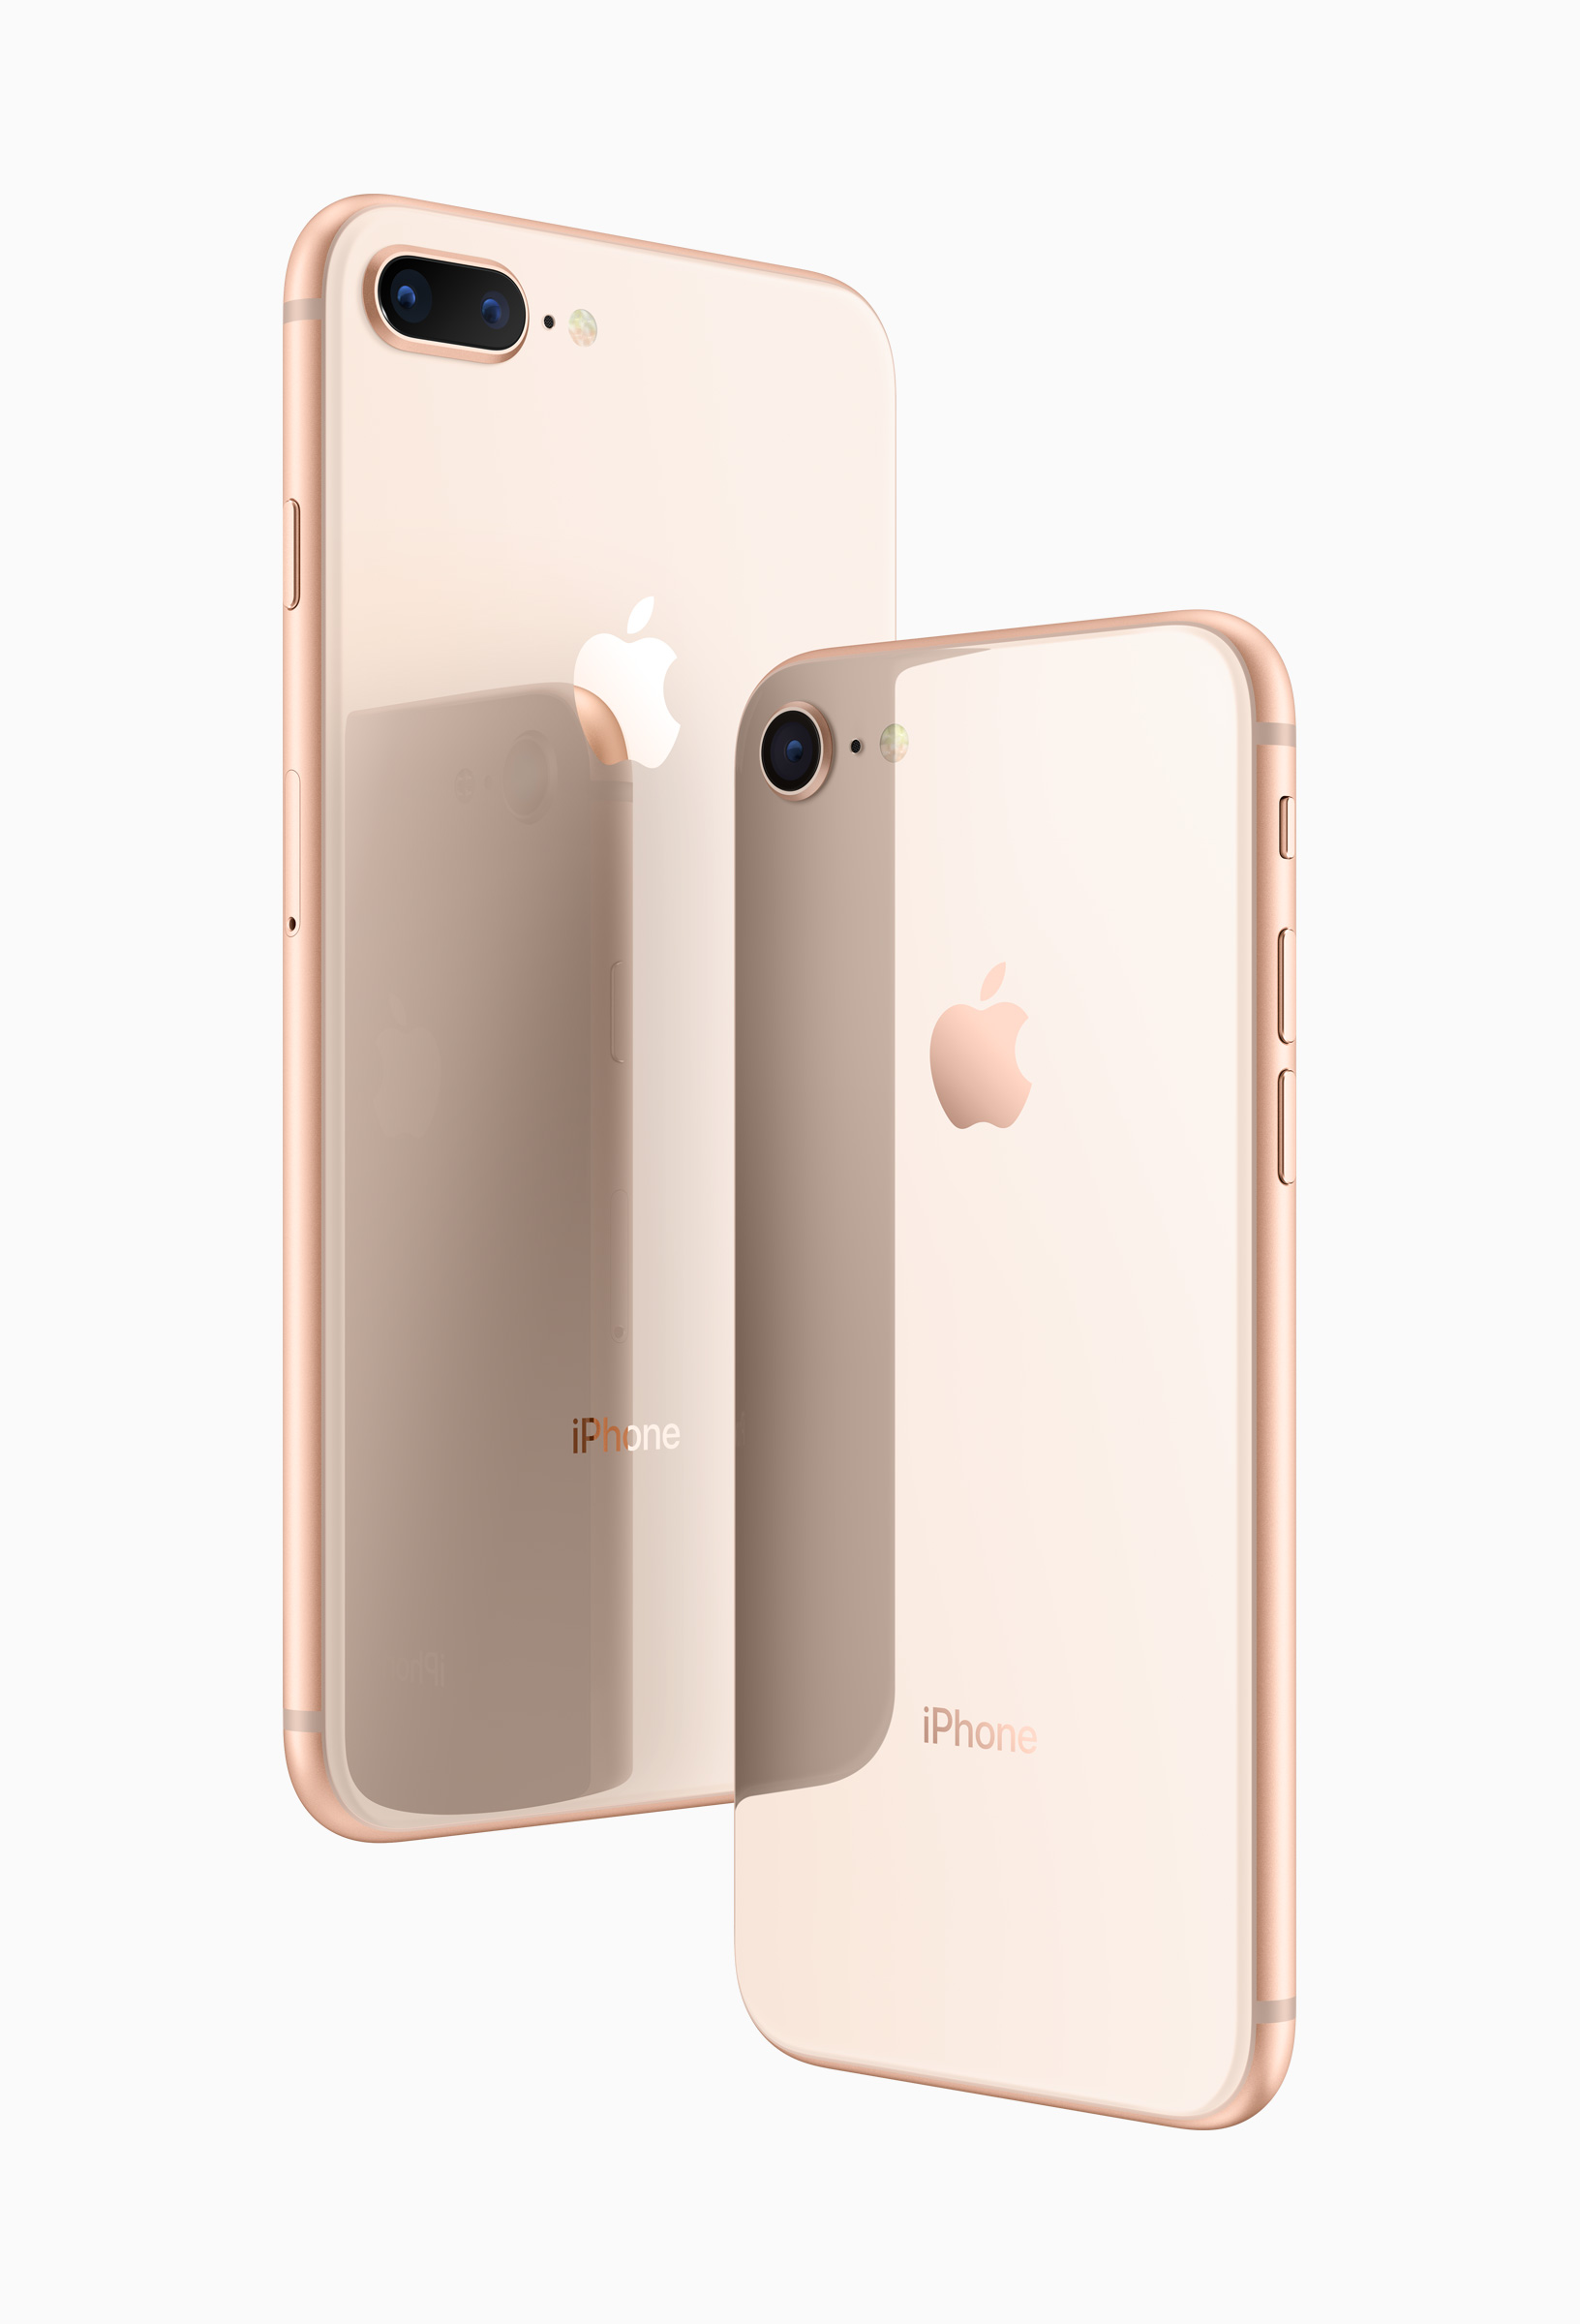 All About The Iphone 8 And Iphone X Cameras